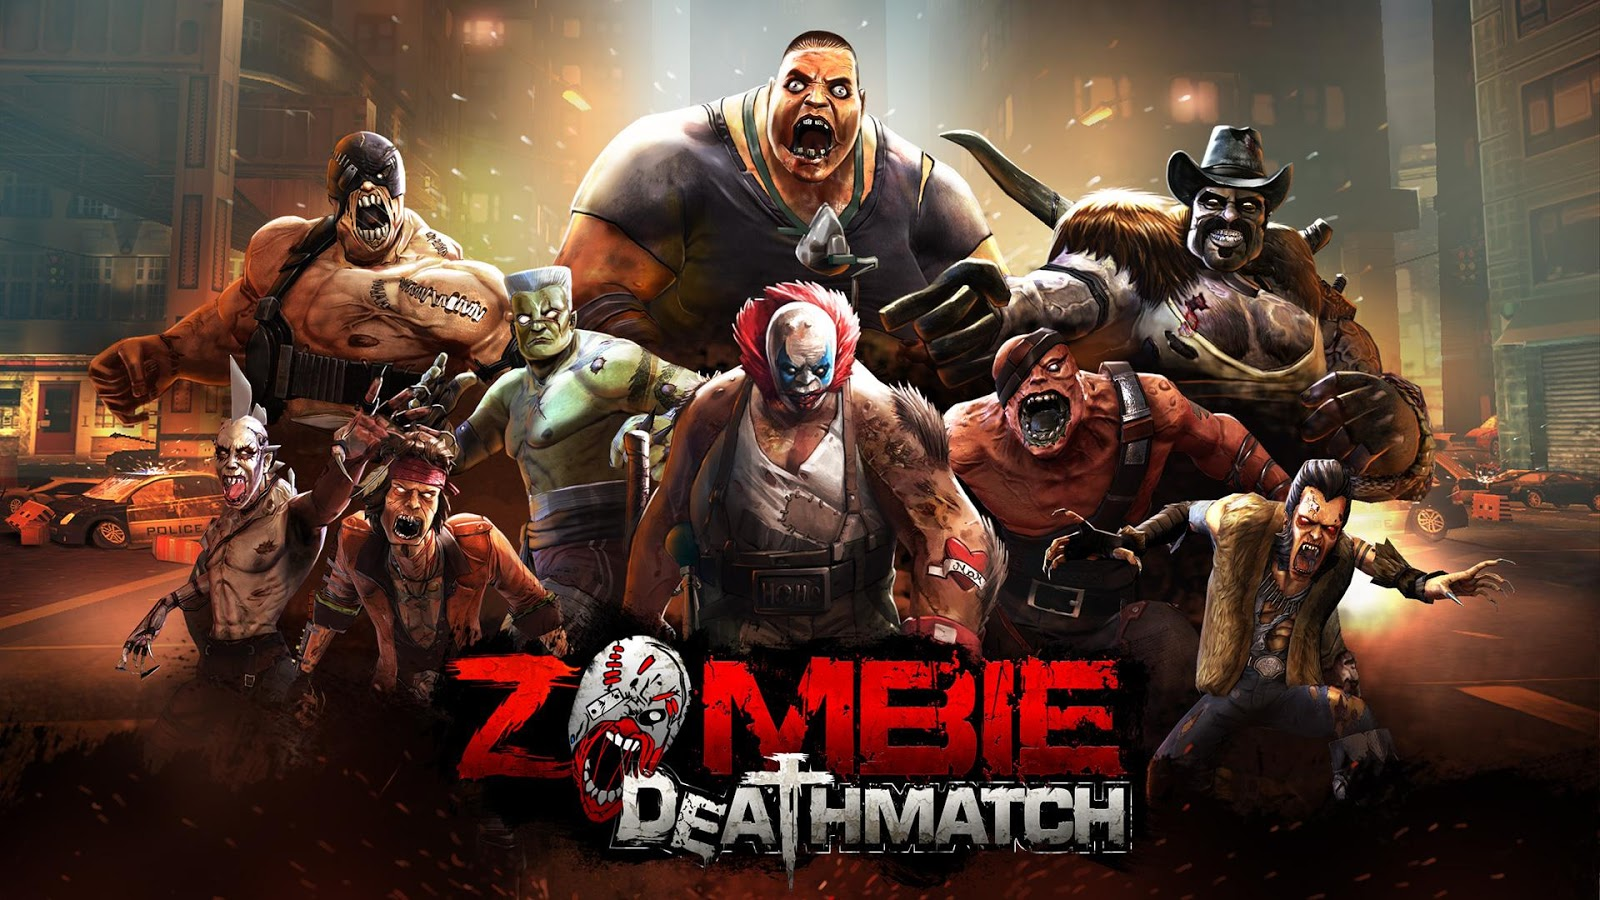 zombie matchmaking ep 1 Hell is upon us 30 likes  a new players steps in to help defeat the zombies in a matchmaking  episode 1 30 days without an accident.